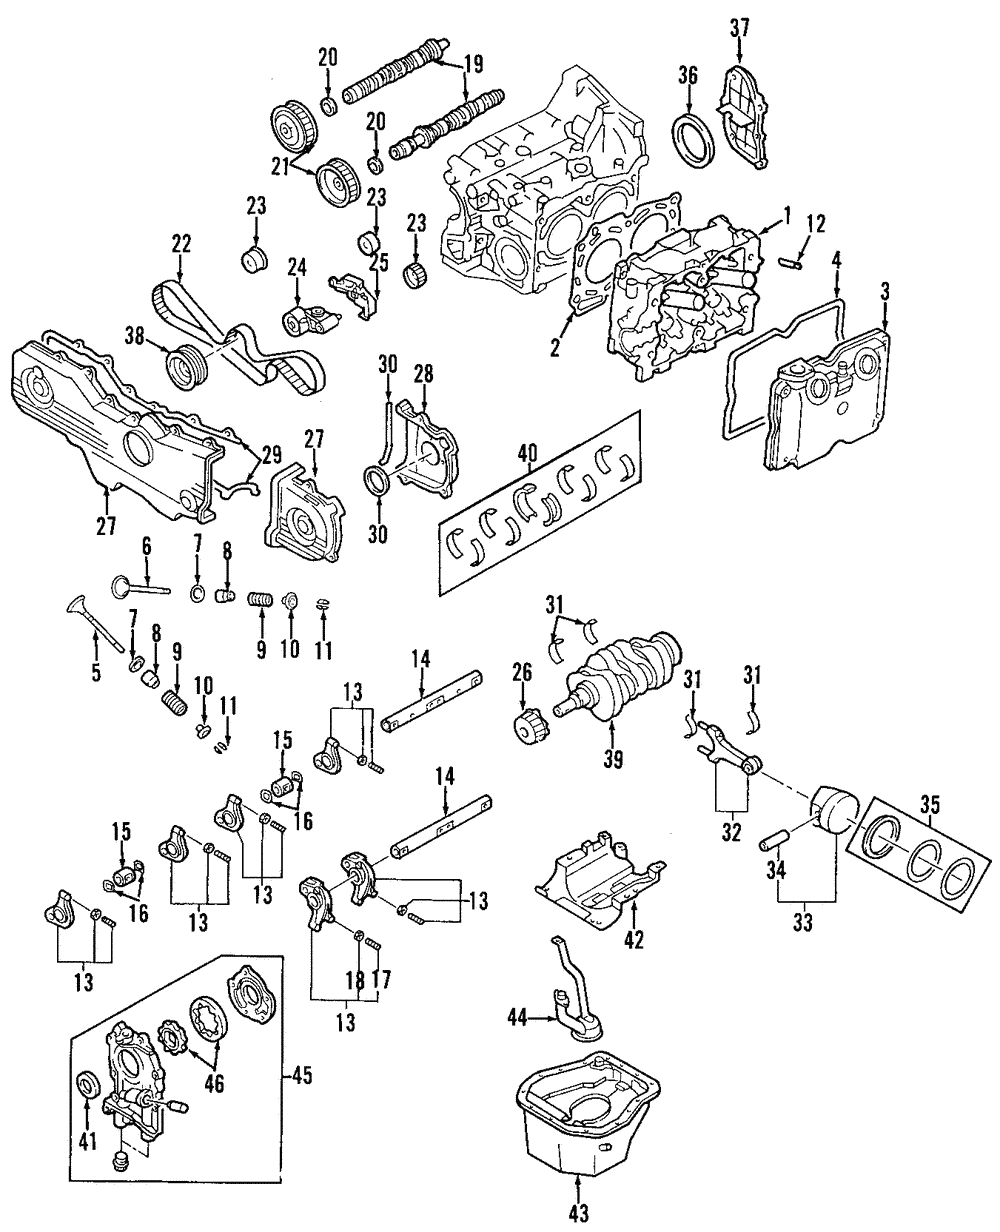 hight resolution of part can be found as 13 in the diagram above genuine subaru parts